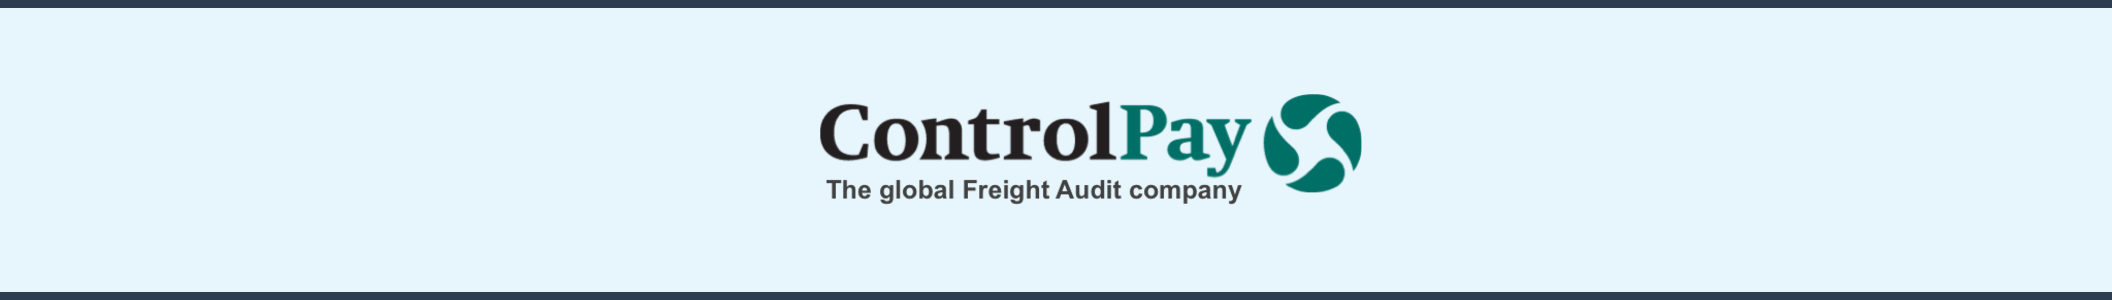 ControlPay.Freight Audit